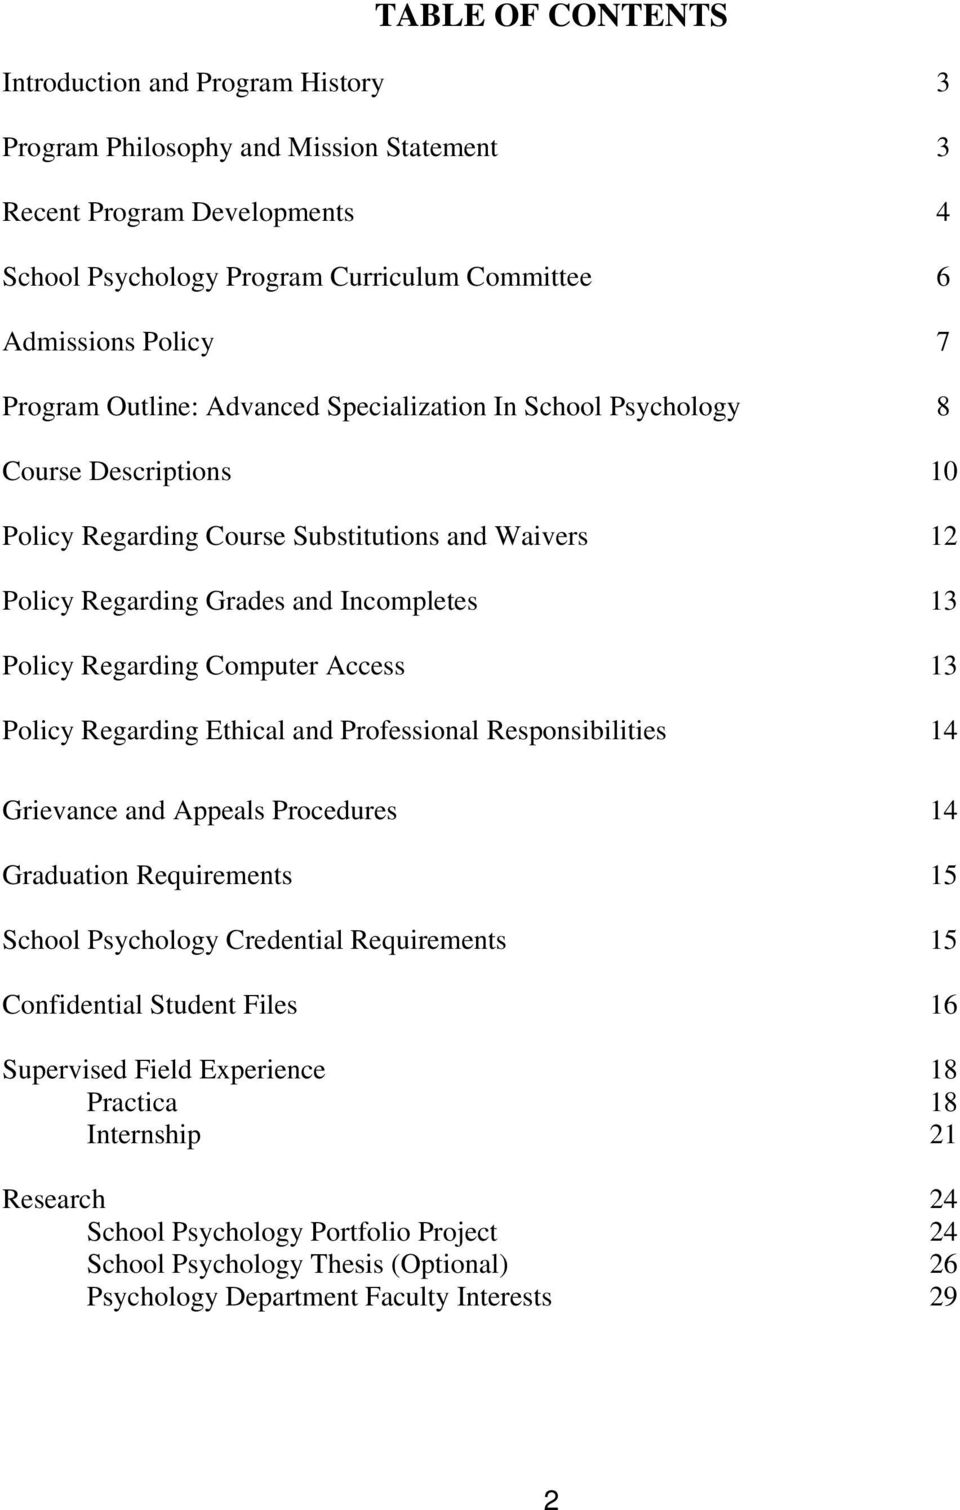 Computer Access 13 13 Policy Regarding Ethical and Professional Responsibilities 14 Grievance and Appeals Procedures 14 Graduation Requirements 15 School Psychology Credential Requirements 15